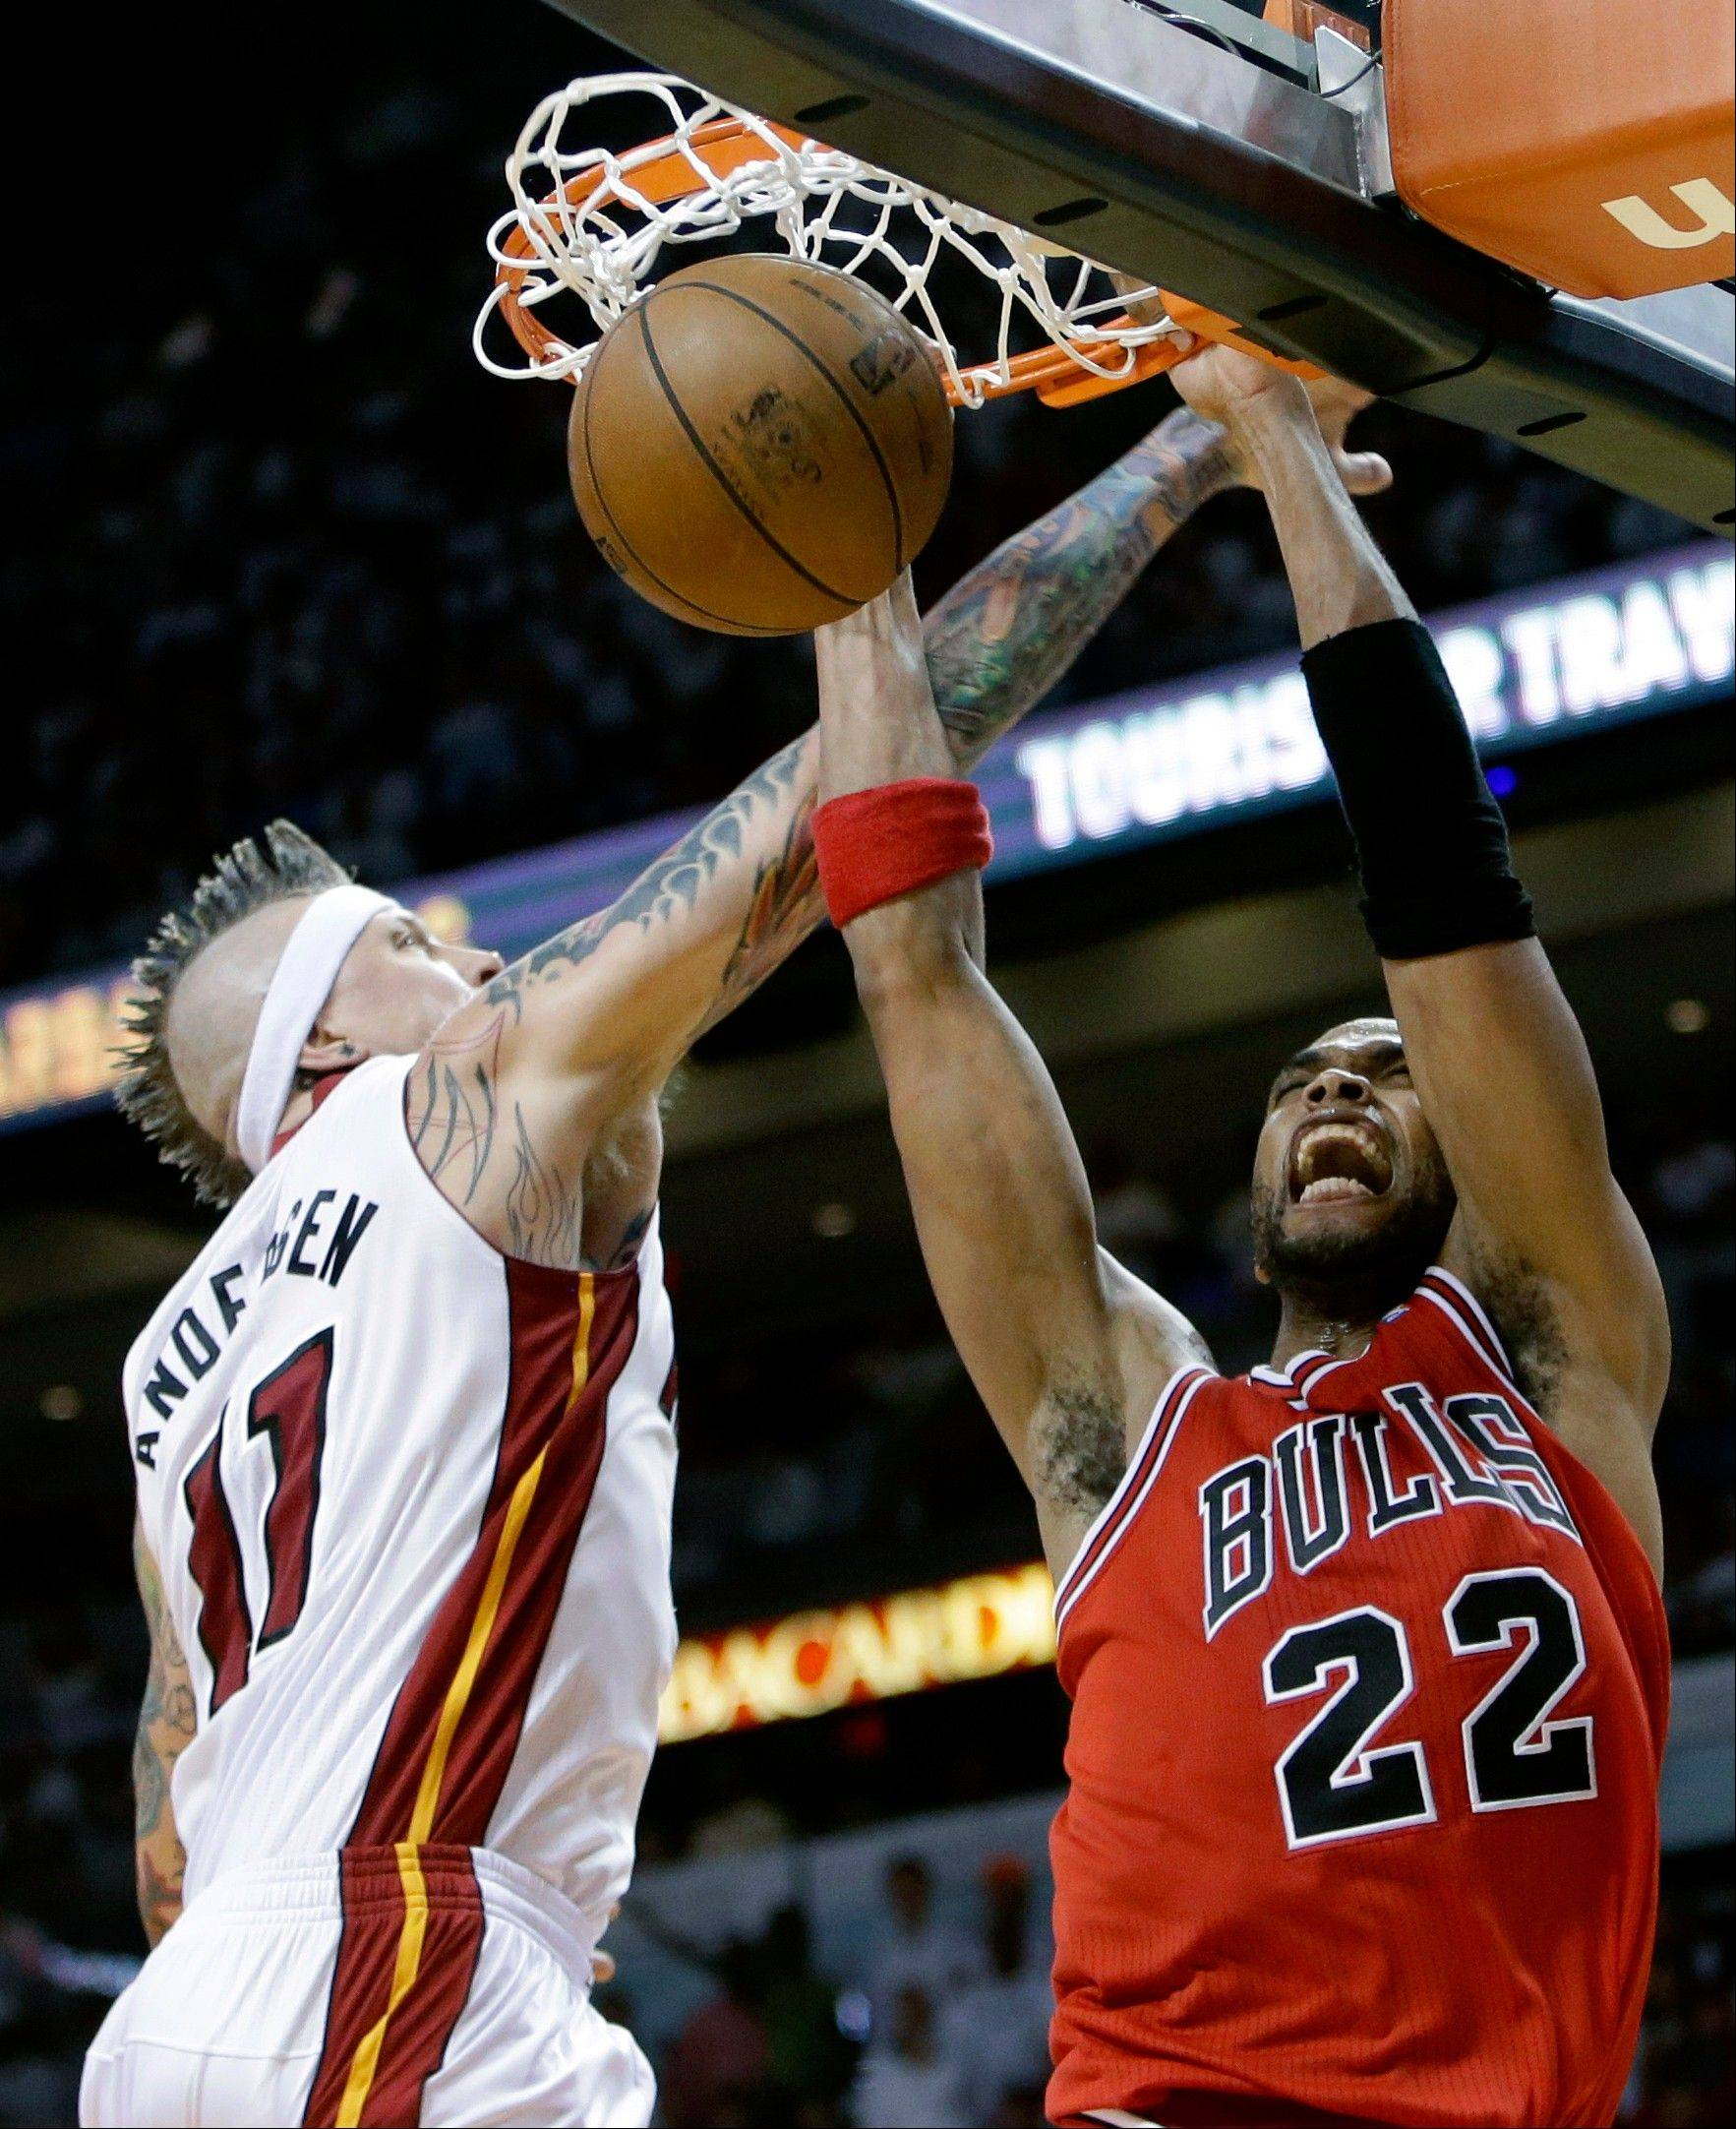 Chicago Bulls forward Taj Gibson (22) dunks against Miami Heat forward Chris Andersen (11) during the second half of Game 1 of the NBA basketball playoff series in the Eastern Conference semifinals, Monday, May 6, 2013 in Miami. The Bulls defeated the Heat 93-86.